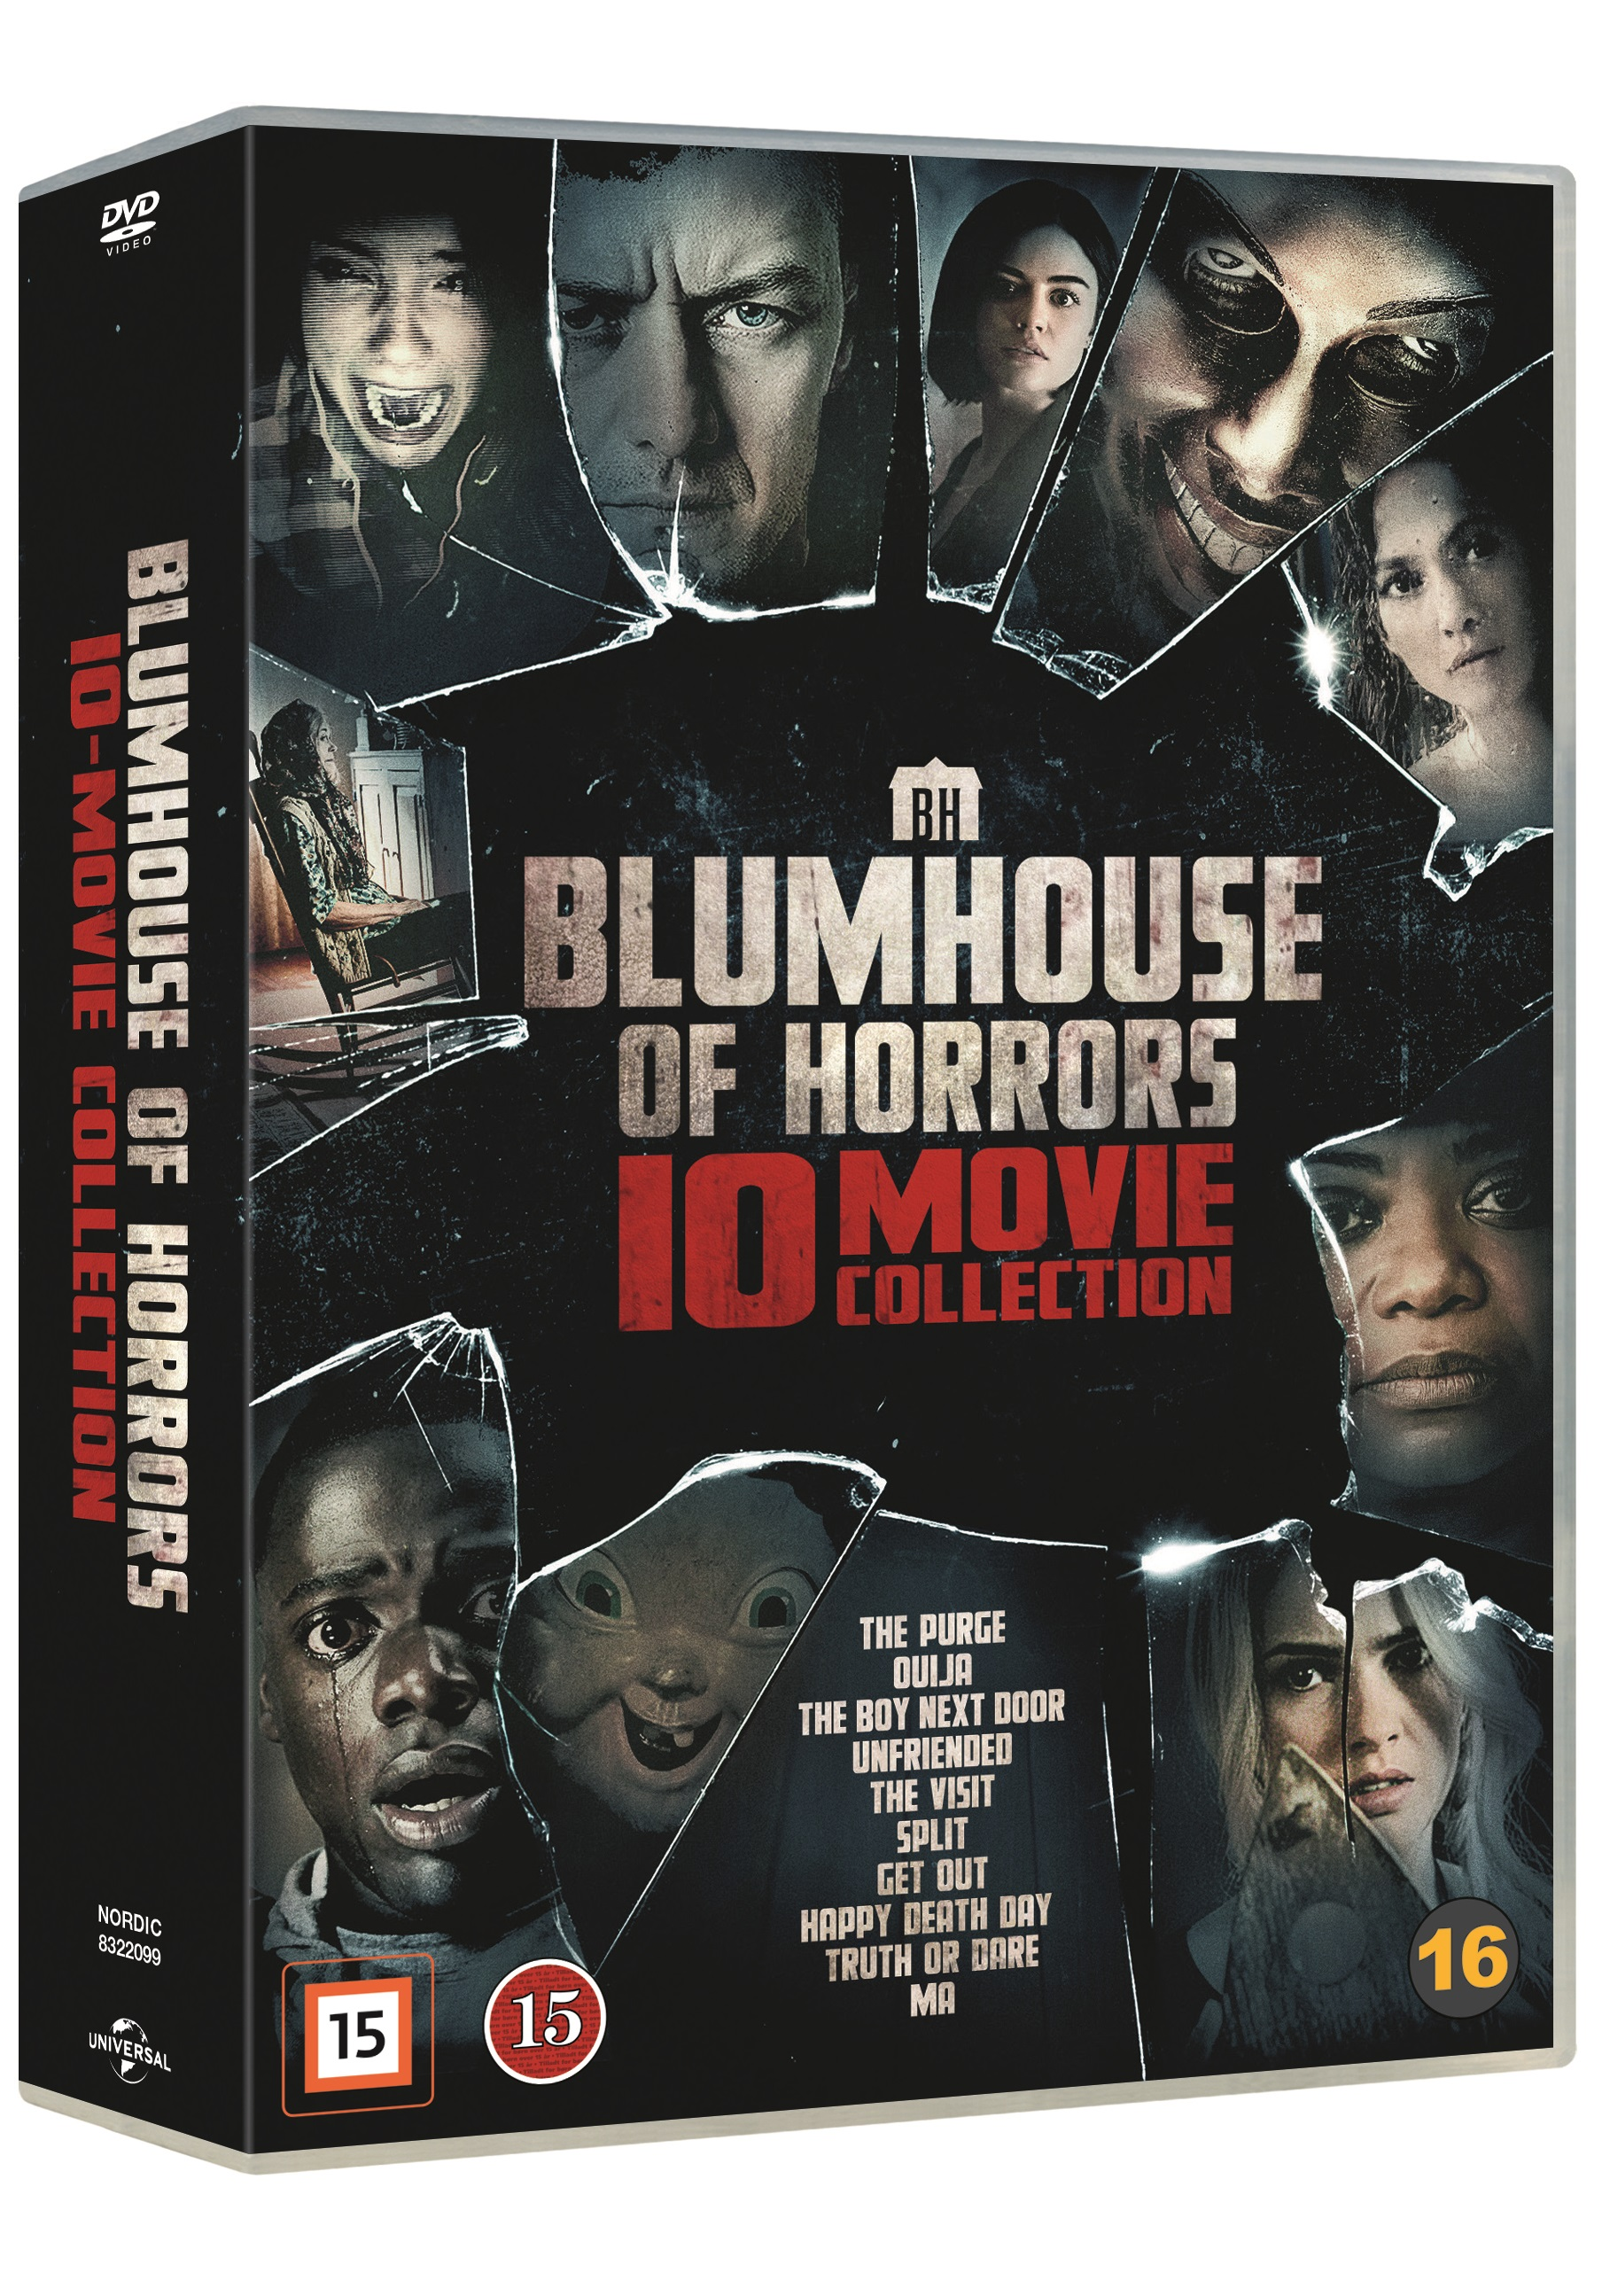 Blumhouse of Horrors - 10 Movie Collection -  - Film -  - 5053083220990 - October 19, 2020